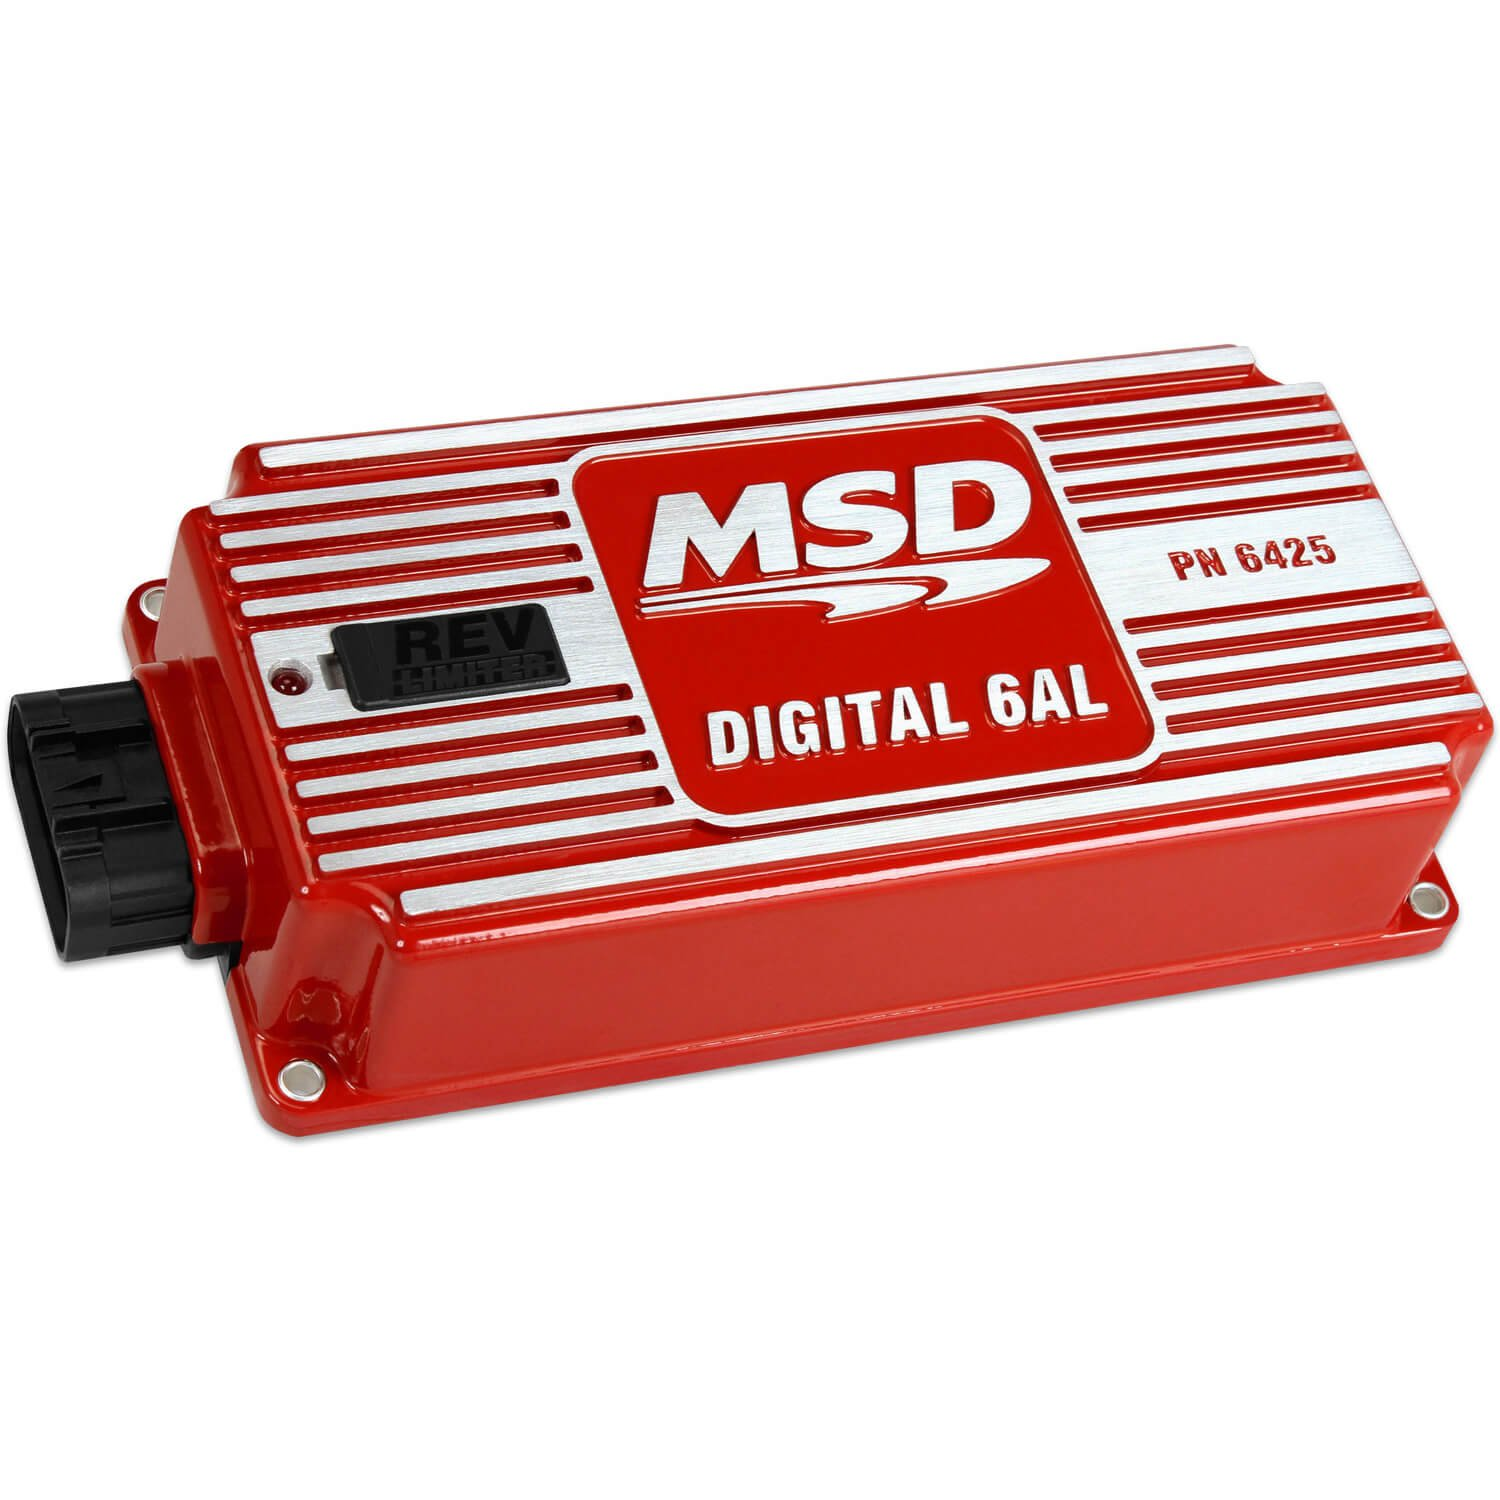 hight resolution of msd 6425 digital 6al ignition control msd ignition 6425 digital 6al wiring diagram 6425 digital 6al